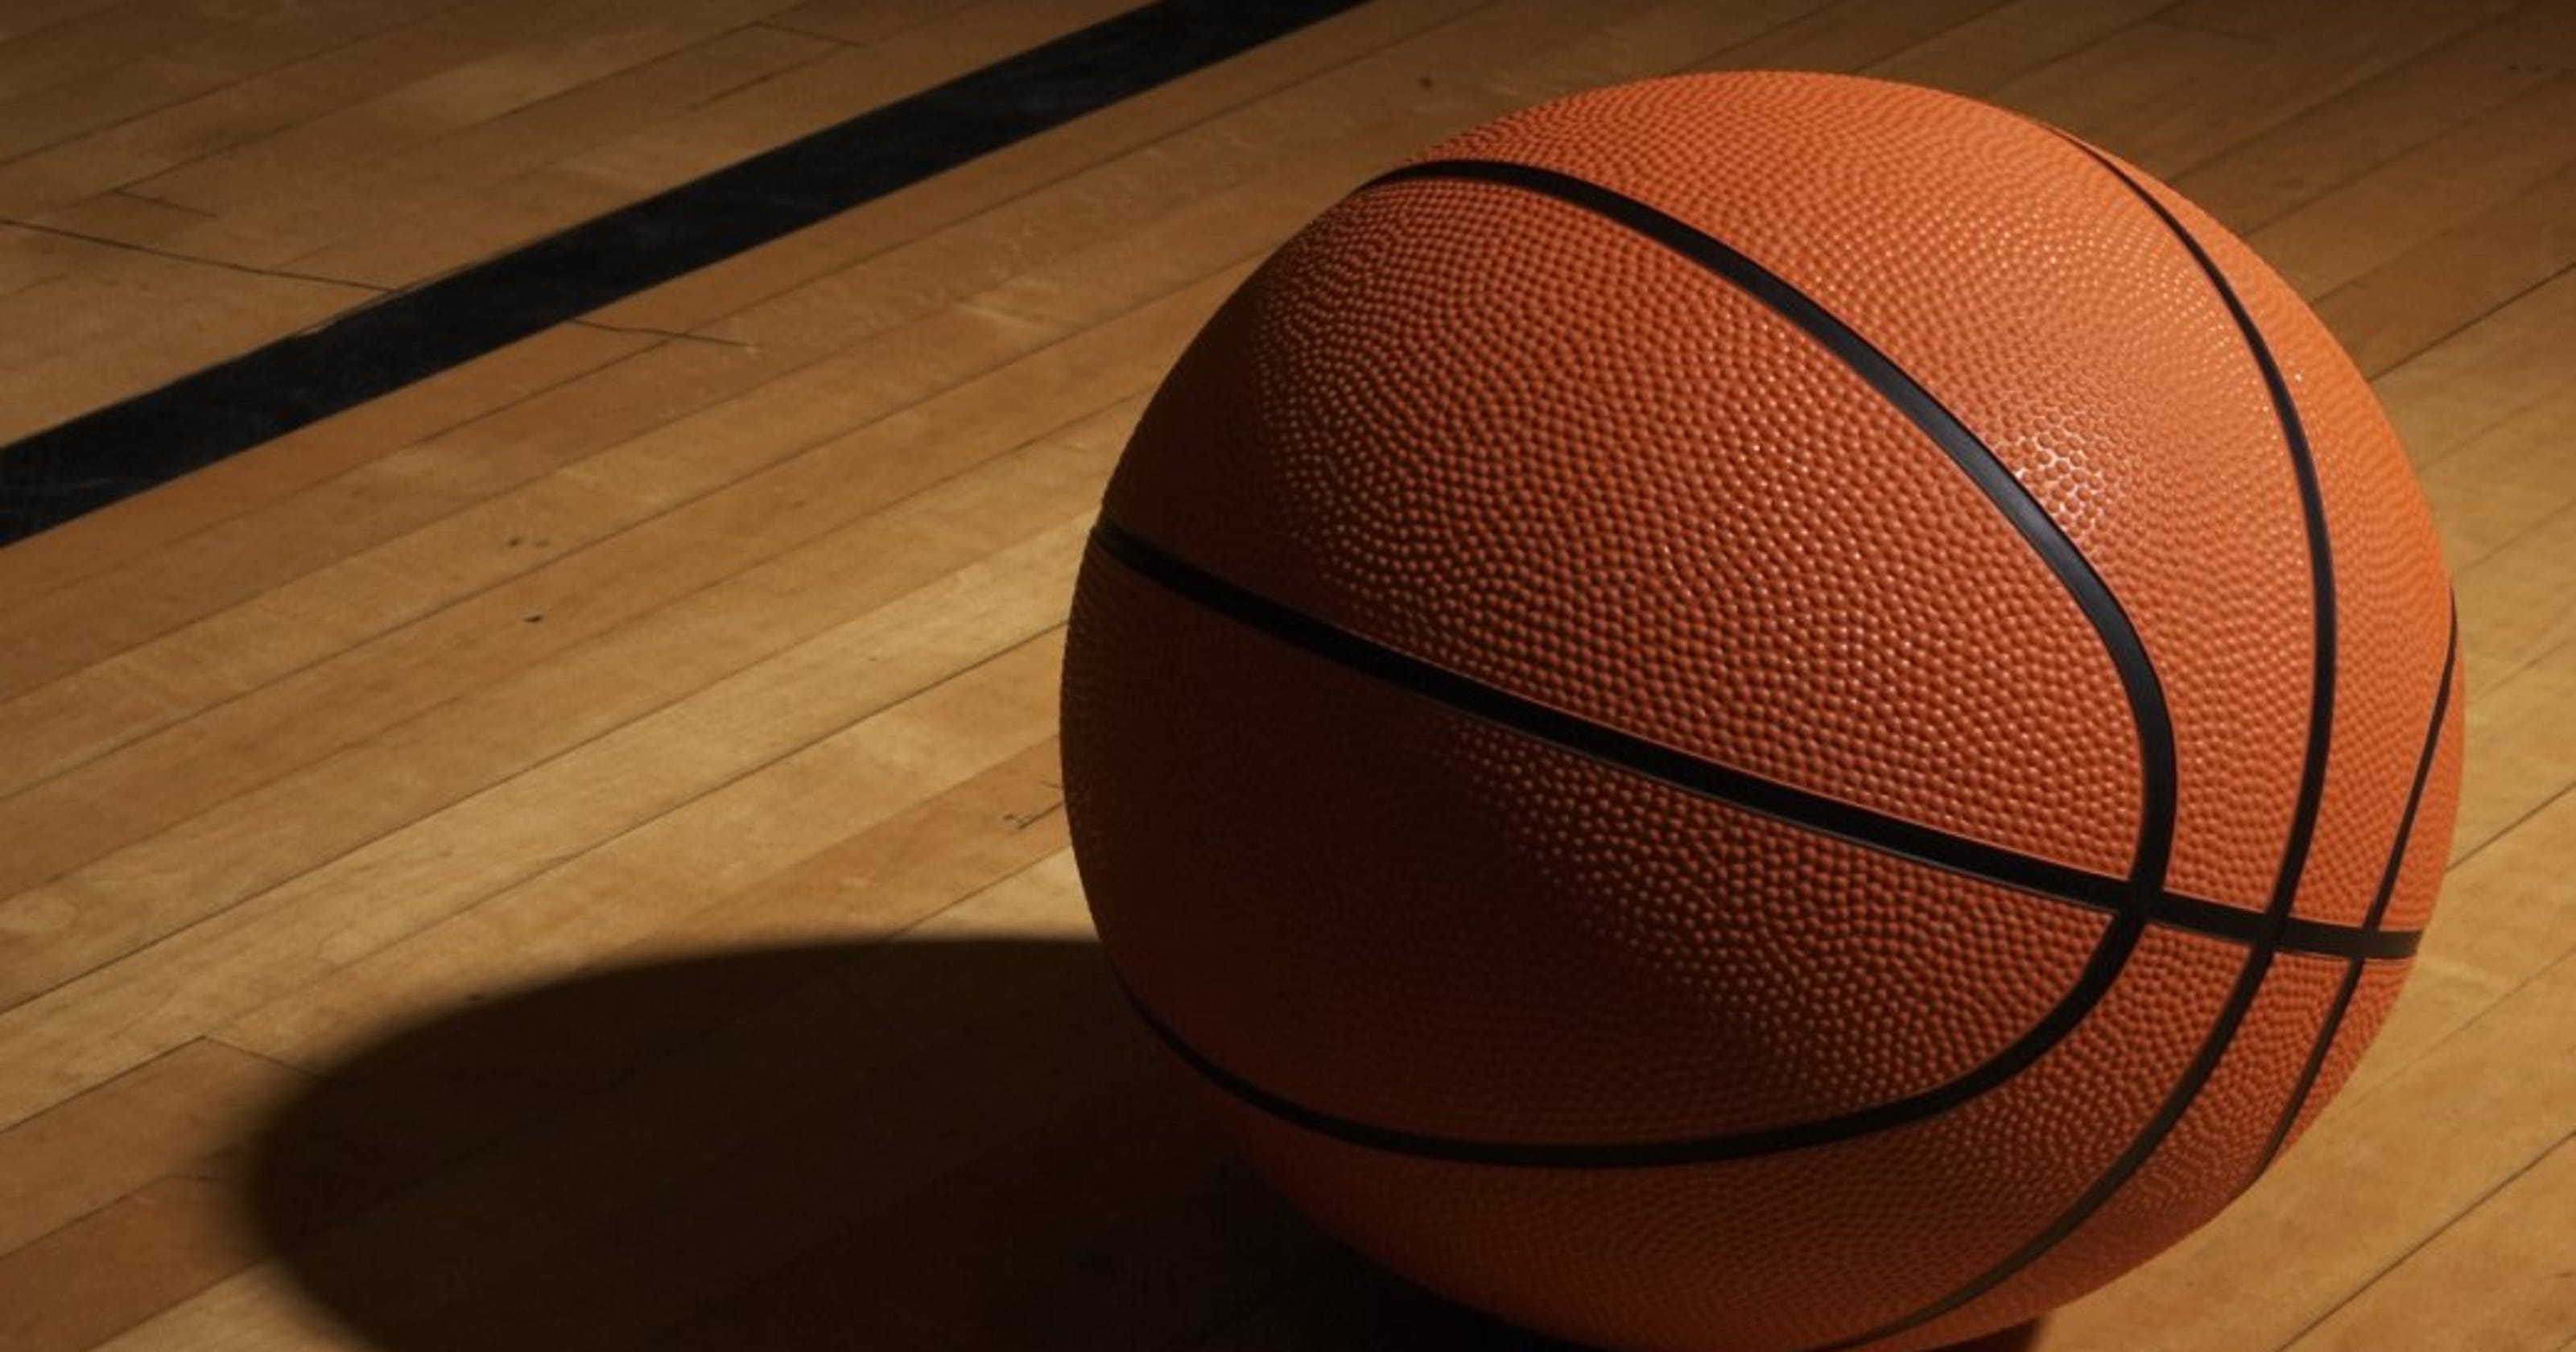 Friday's Indiana high school scores